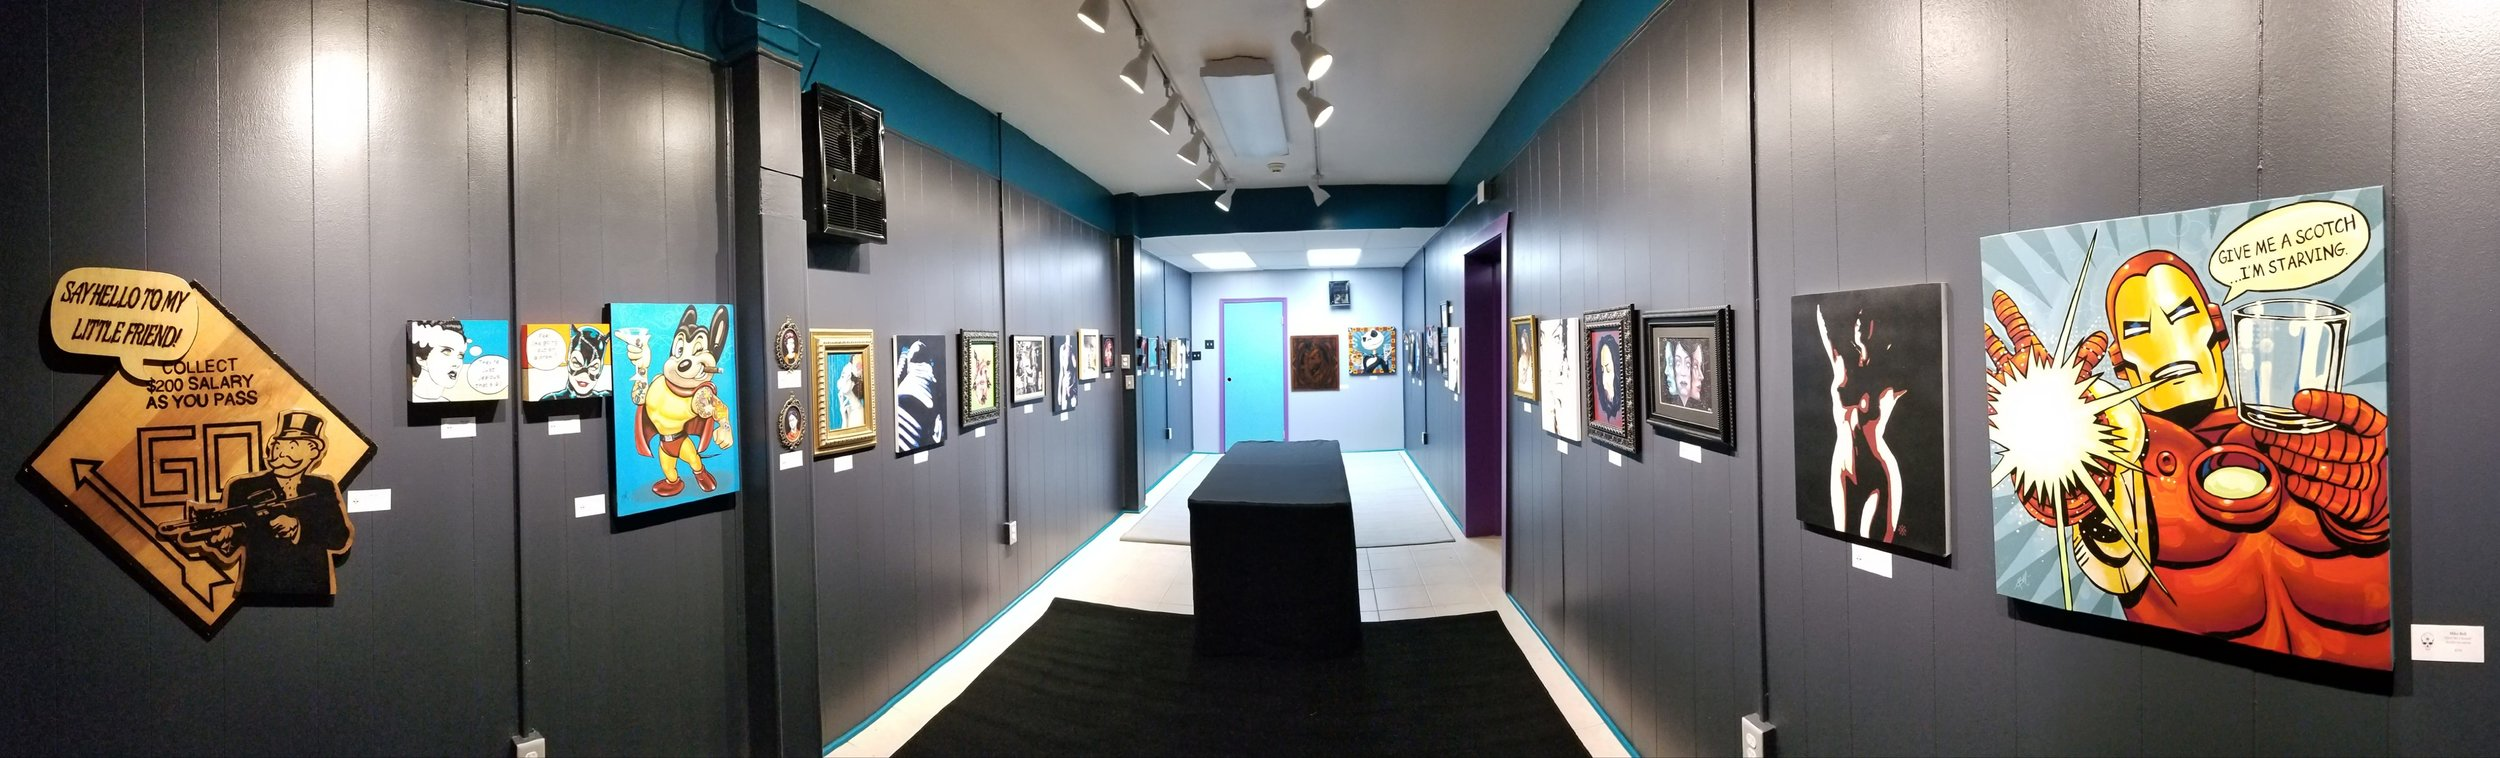 Calvaria Invitational exhibit, the first show at Calvaria which opened in Nov. 2018.